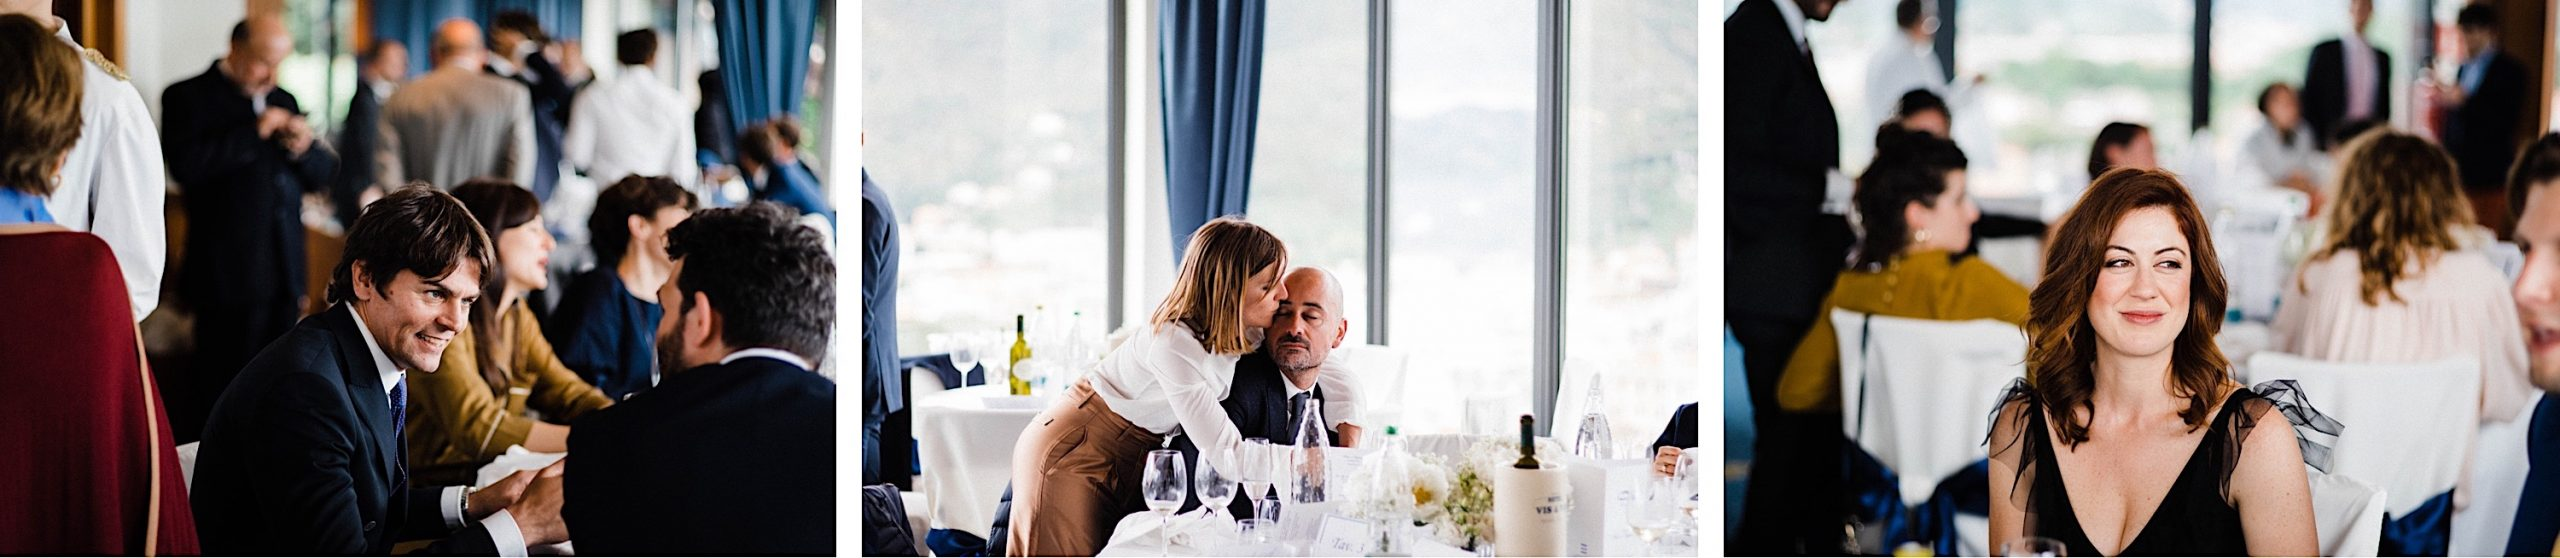 Documentary, Candid Wedding Photography of guests during a destination wedding on the Italian Riviera.